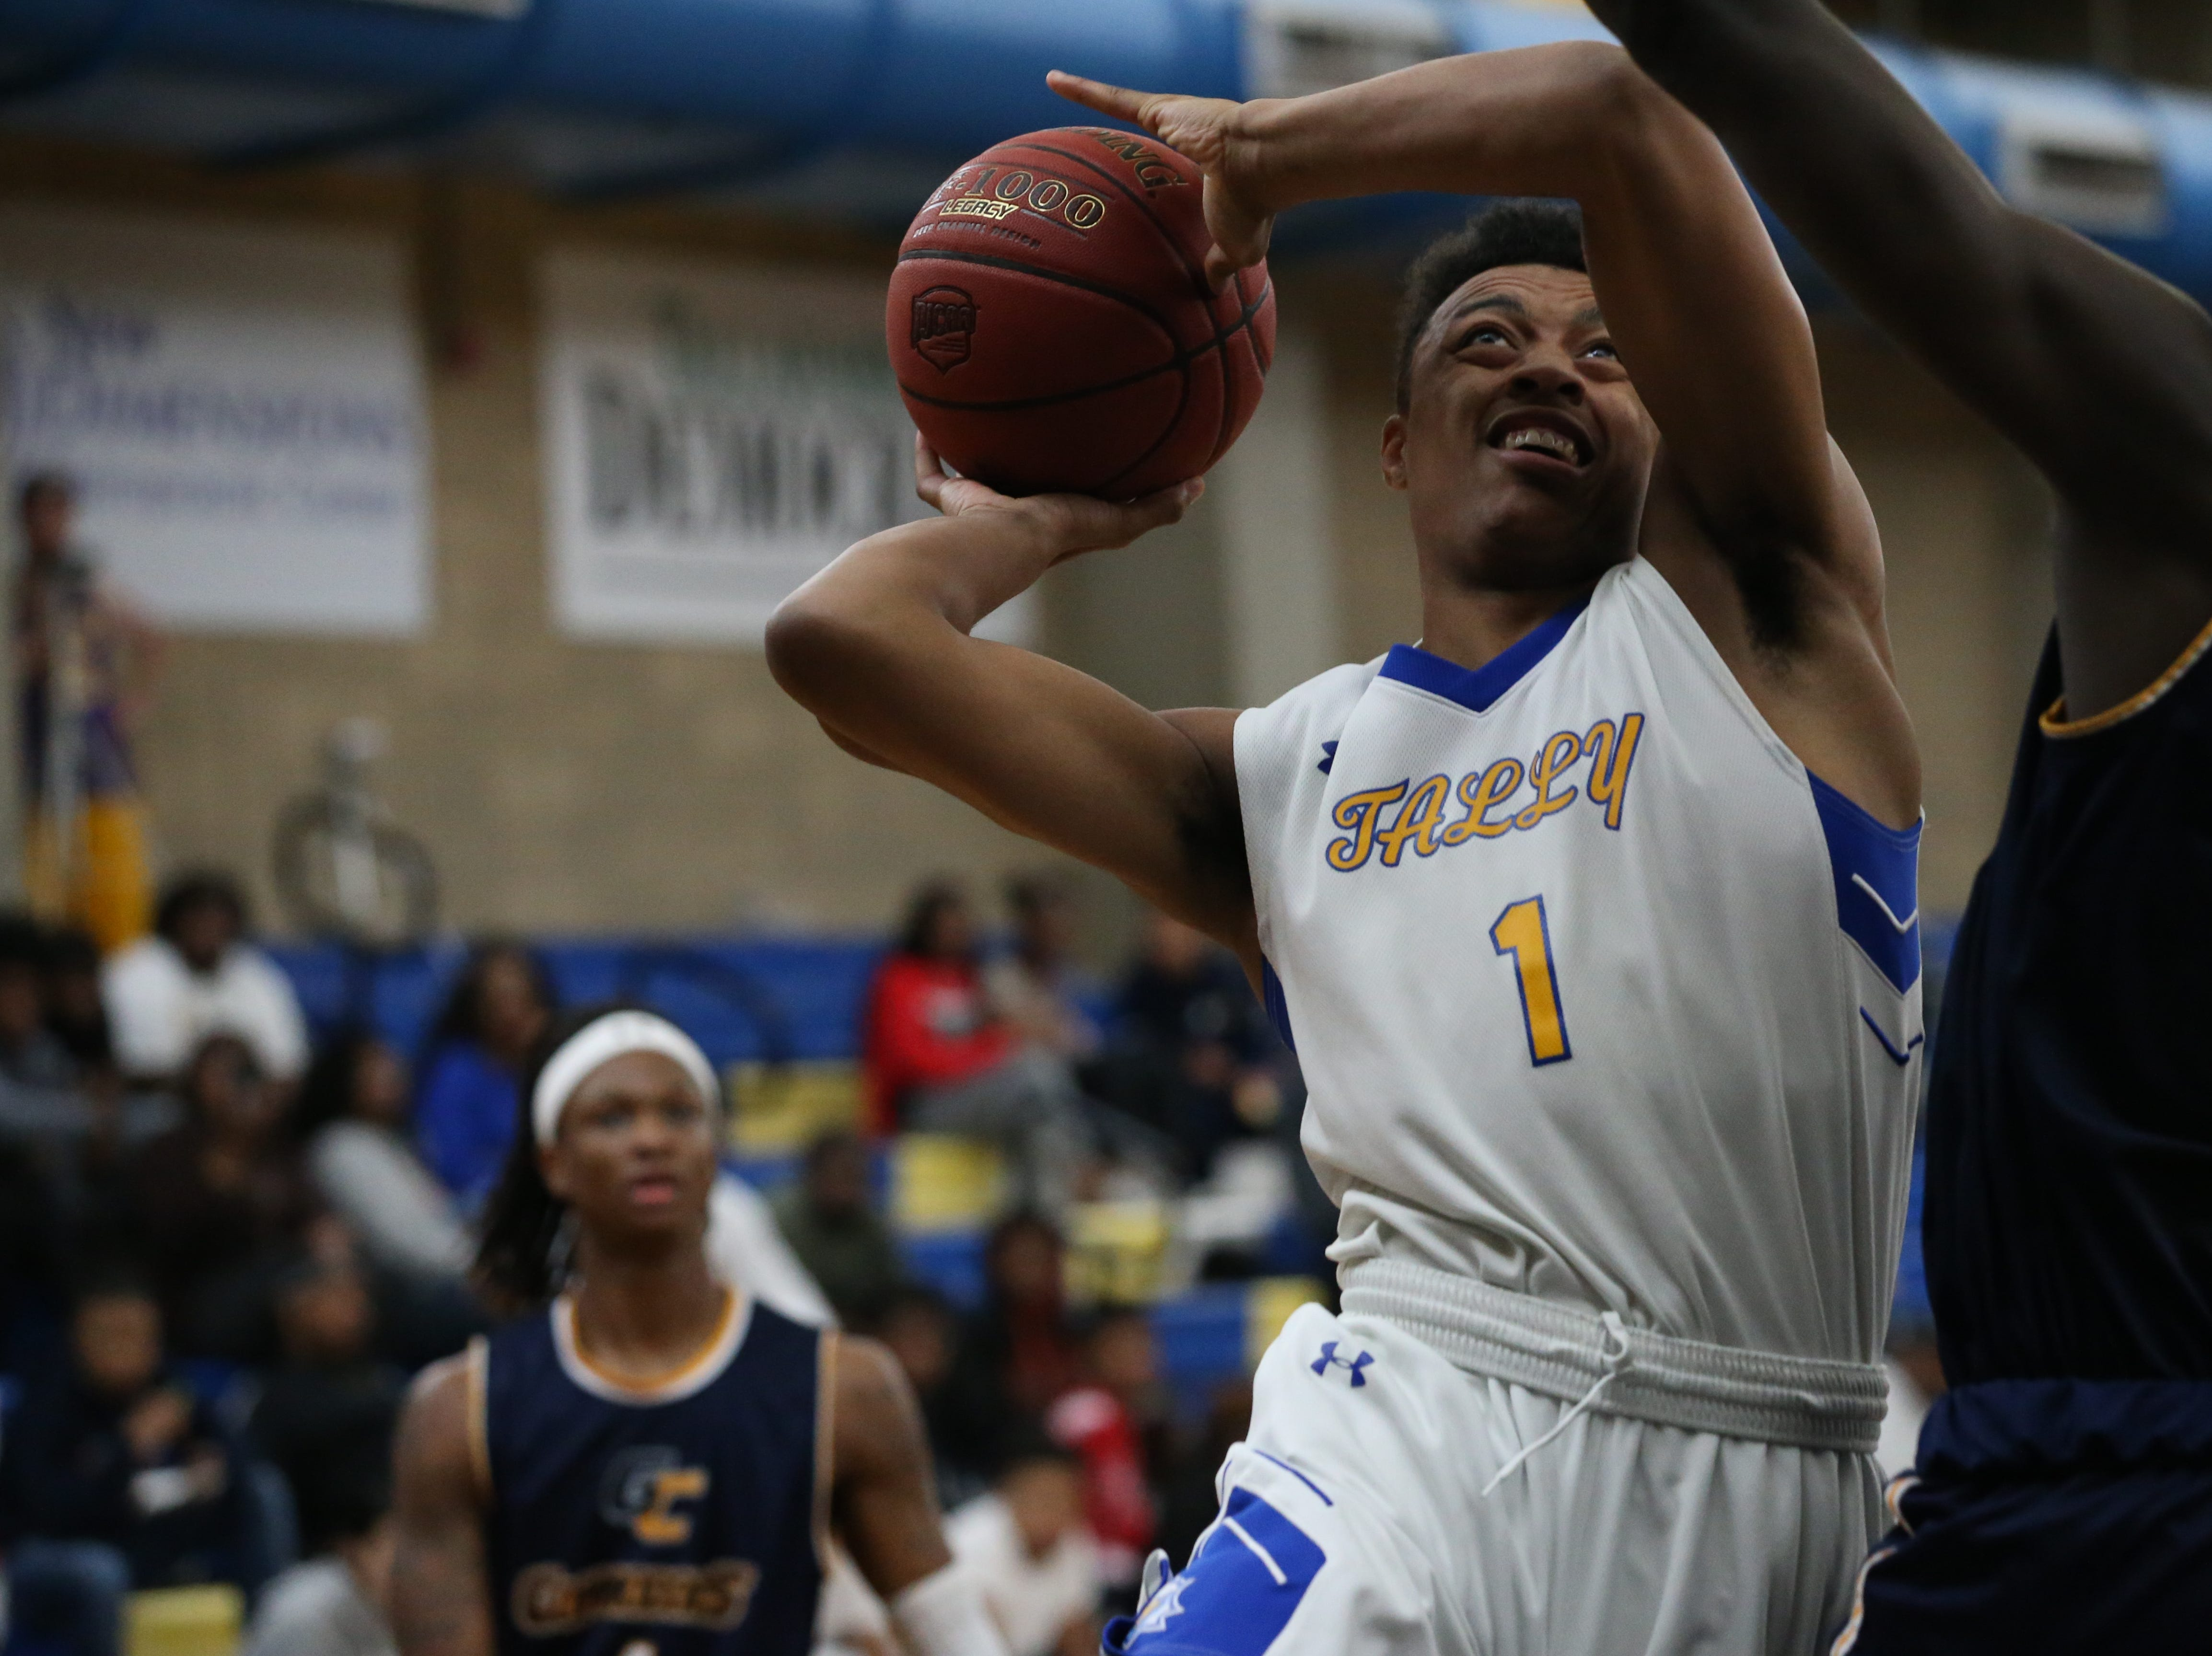 Tallahassee Community College Eagles guard Eric Boone (1) drives the ball in for a layup. The Tallahassee Community College Eagles host the Gulf Coast State College Commodores in a conference match-up in the Eagledome, Saturday, Jan. 5, 2019.